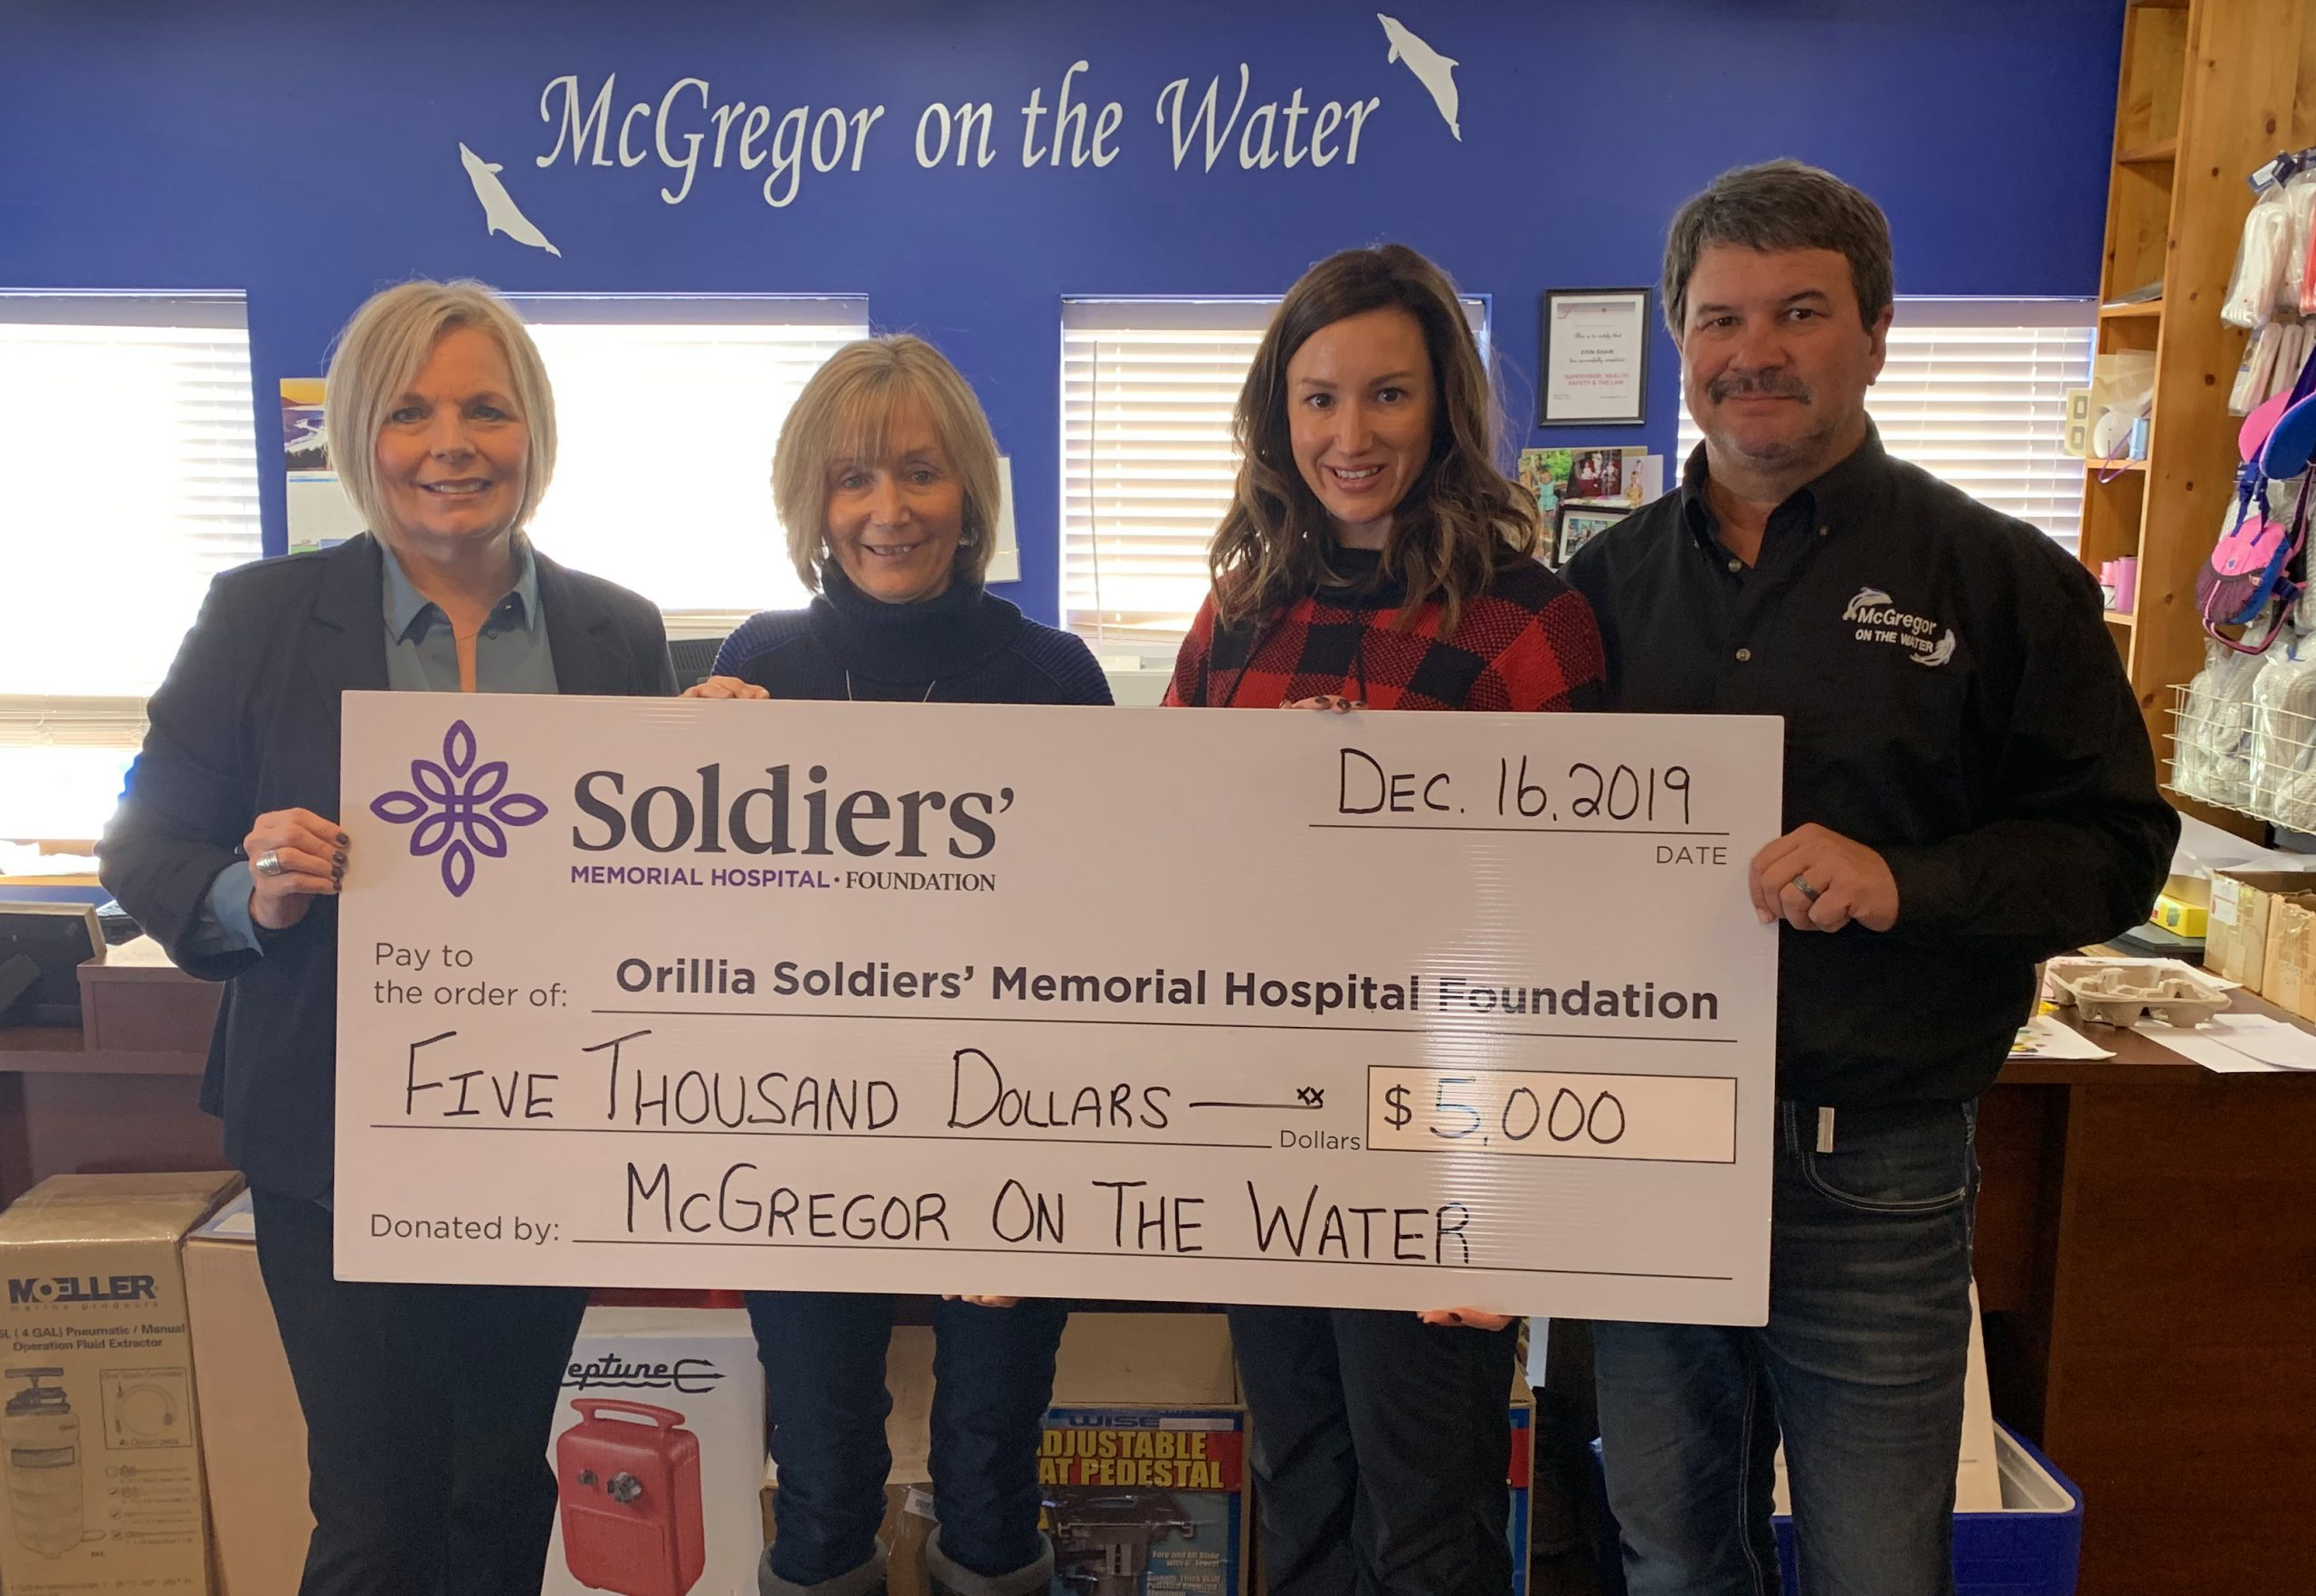 (L-R) Lisa Wanamaker, OSMH Foundation Development Officer is presented with a cheque for $5,000, the proceeds from the 19th annual McGregor on the Water Customer Appreciation BBQ, from Linda Csumrik, Vice President, Erin Shaw, Office and Dock Crew Member, and Doug Csumrik, President of McGregor on the Water.